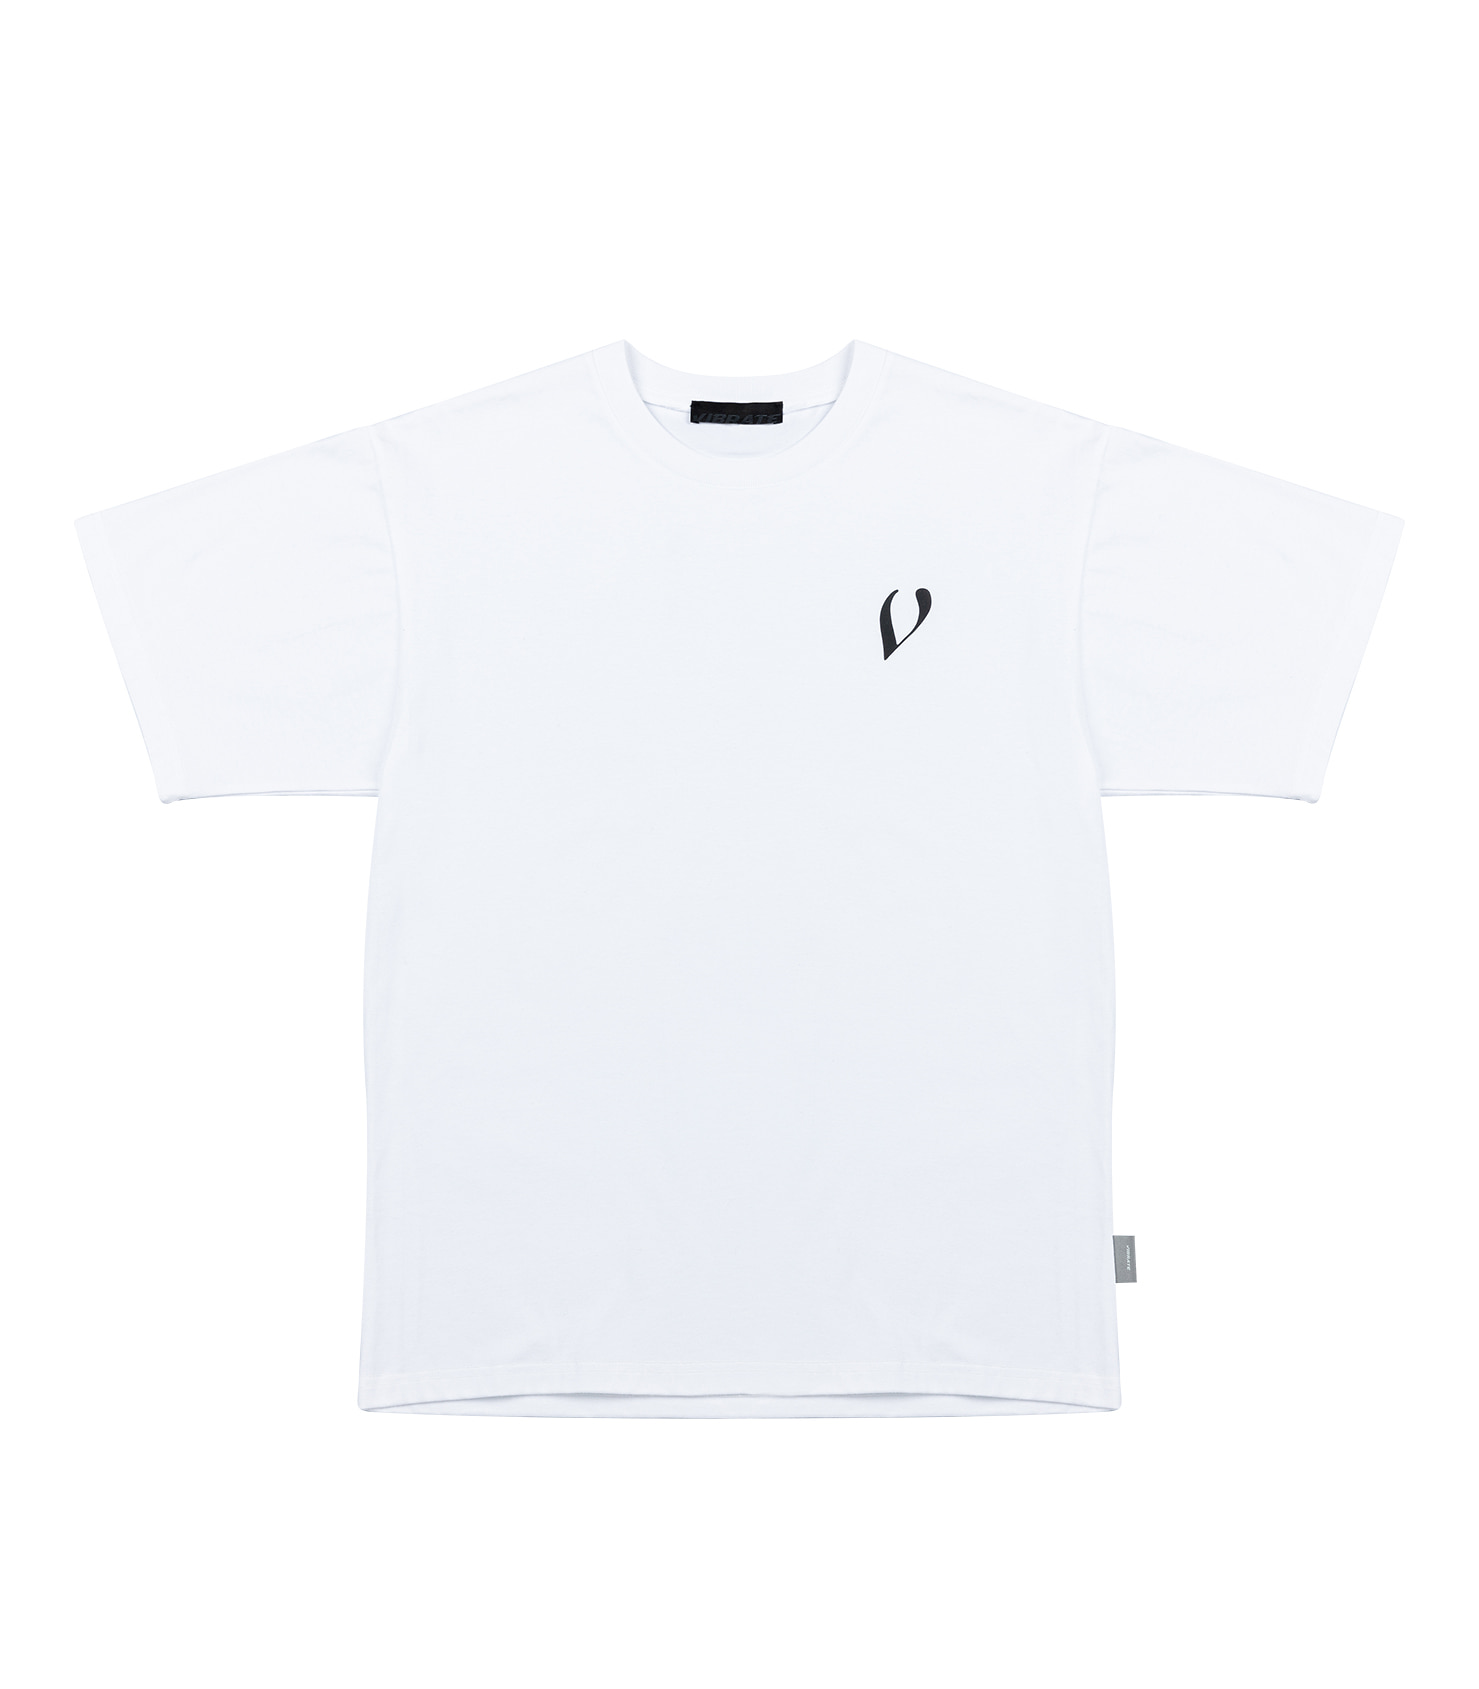 V FLASH M001 T-SHIRT (WHITE)